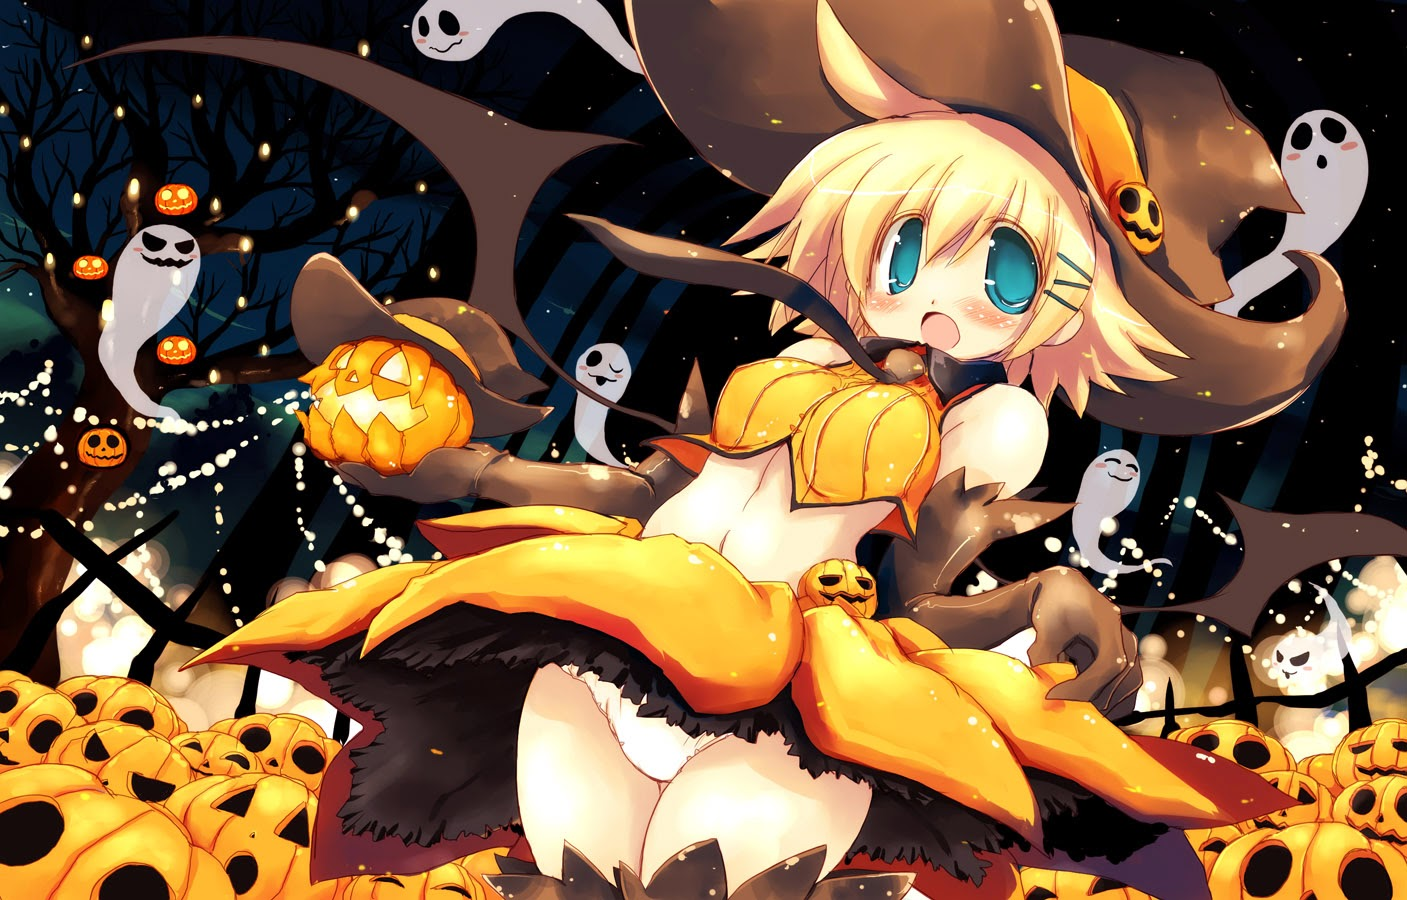 anime halloween girl wallpaper hd - natalia wallpapers